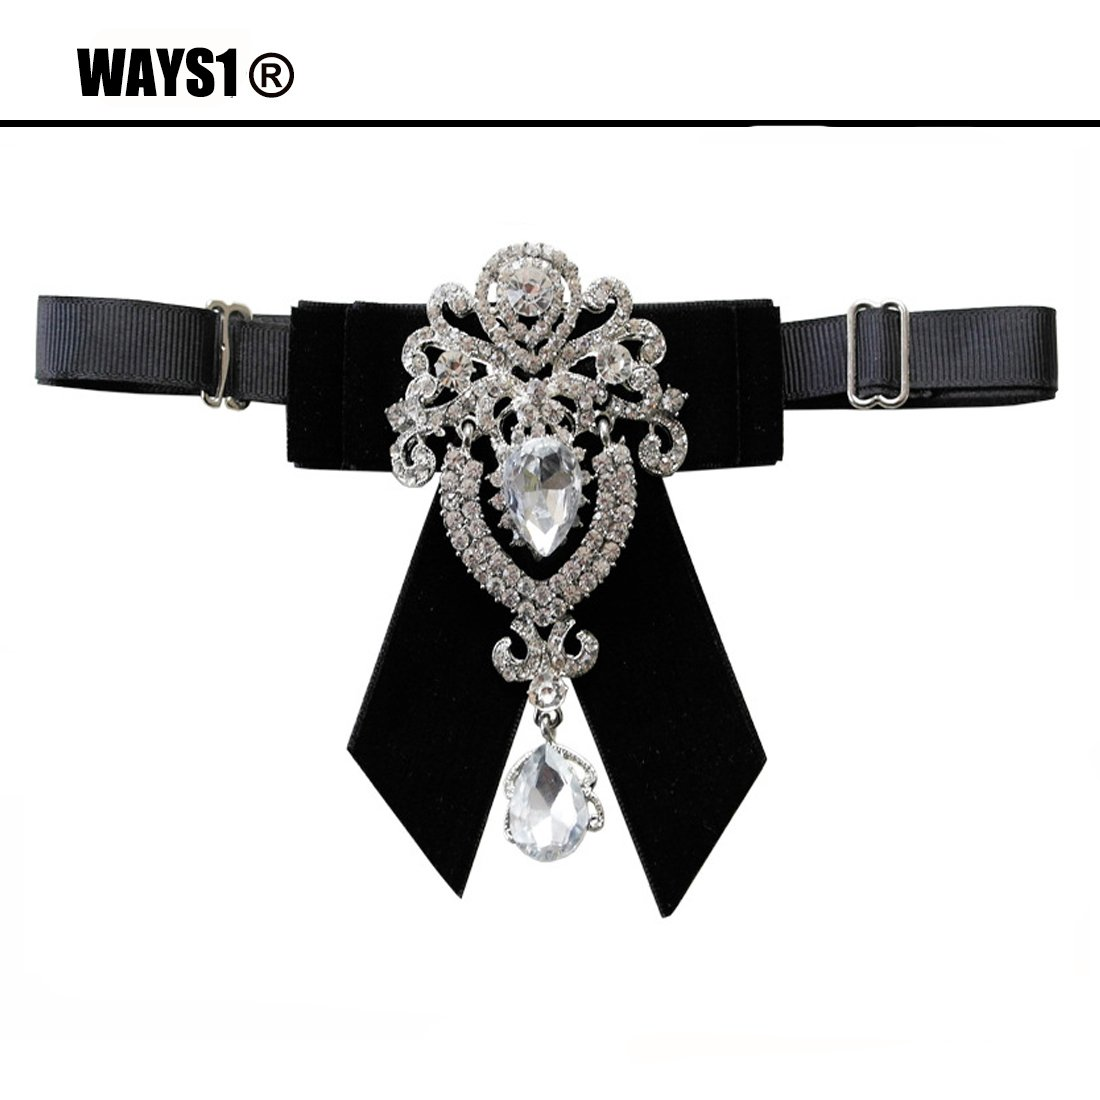 black WAYS1 Male Fashion Bow Tie For Wedding or Party velet with gemstone Adjustable Pre Handmade Crystal Mens Solid Pre-tied Formal Tuxedo Floral Jacquard Bow tie D12